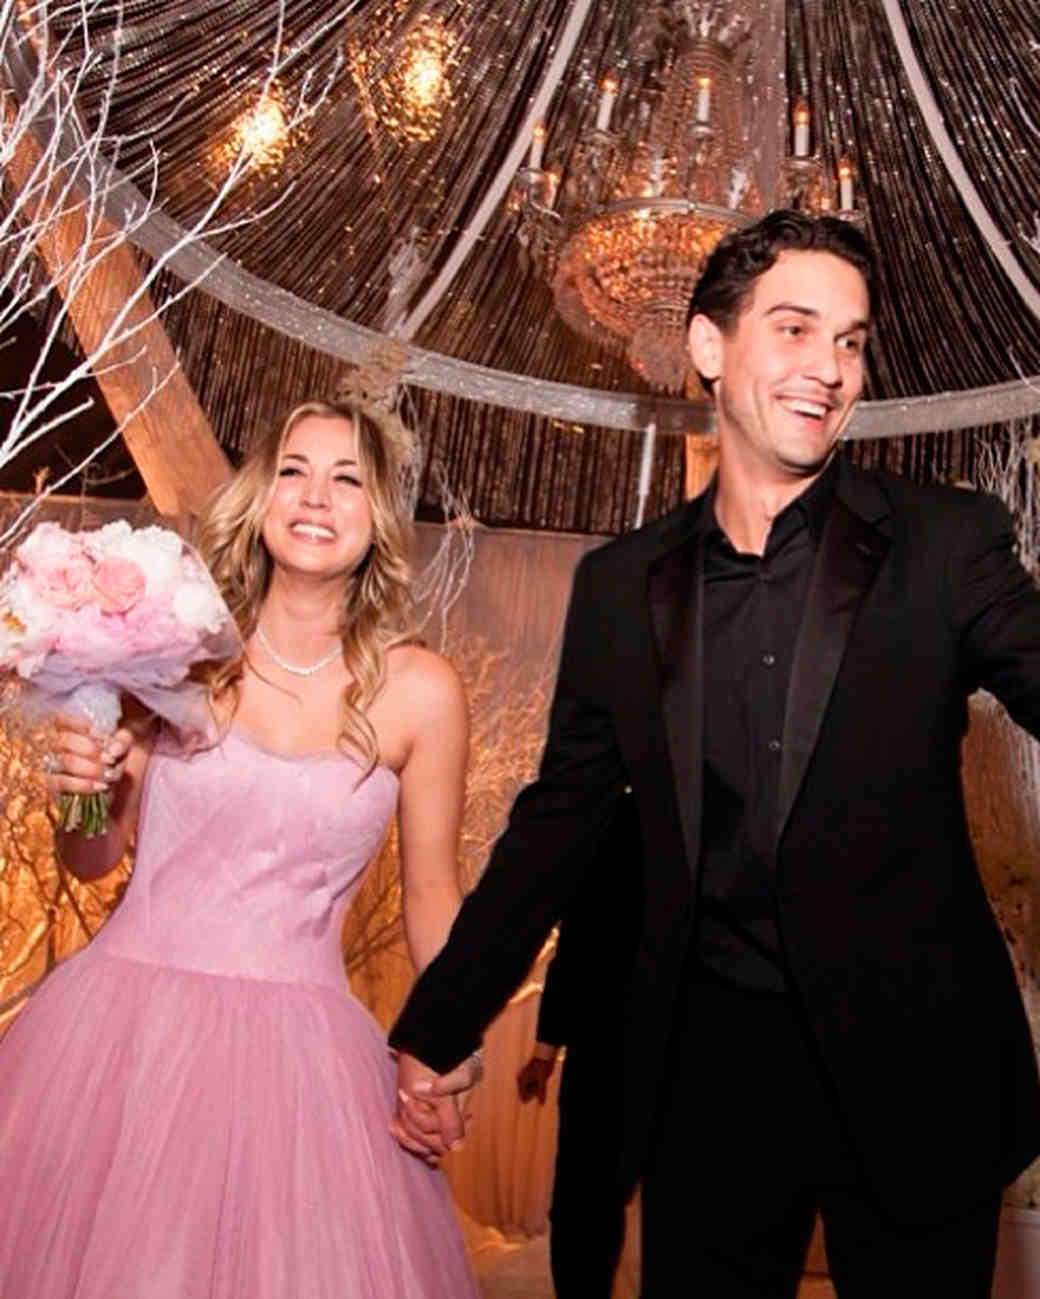 celebrity brides who wore pink wedding dresses fuchsia wedding dress Celebrity Brides Who Wore Pink Wedding Dresses Martha Stewart Weddings